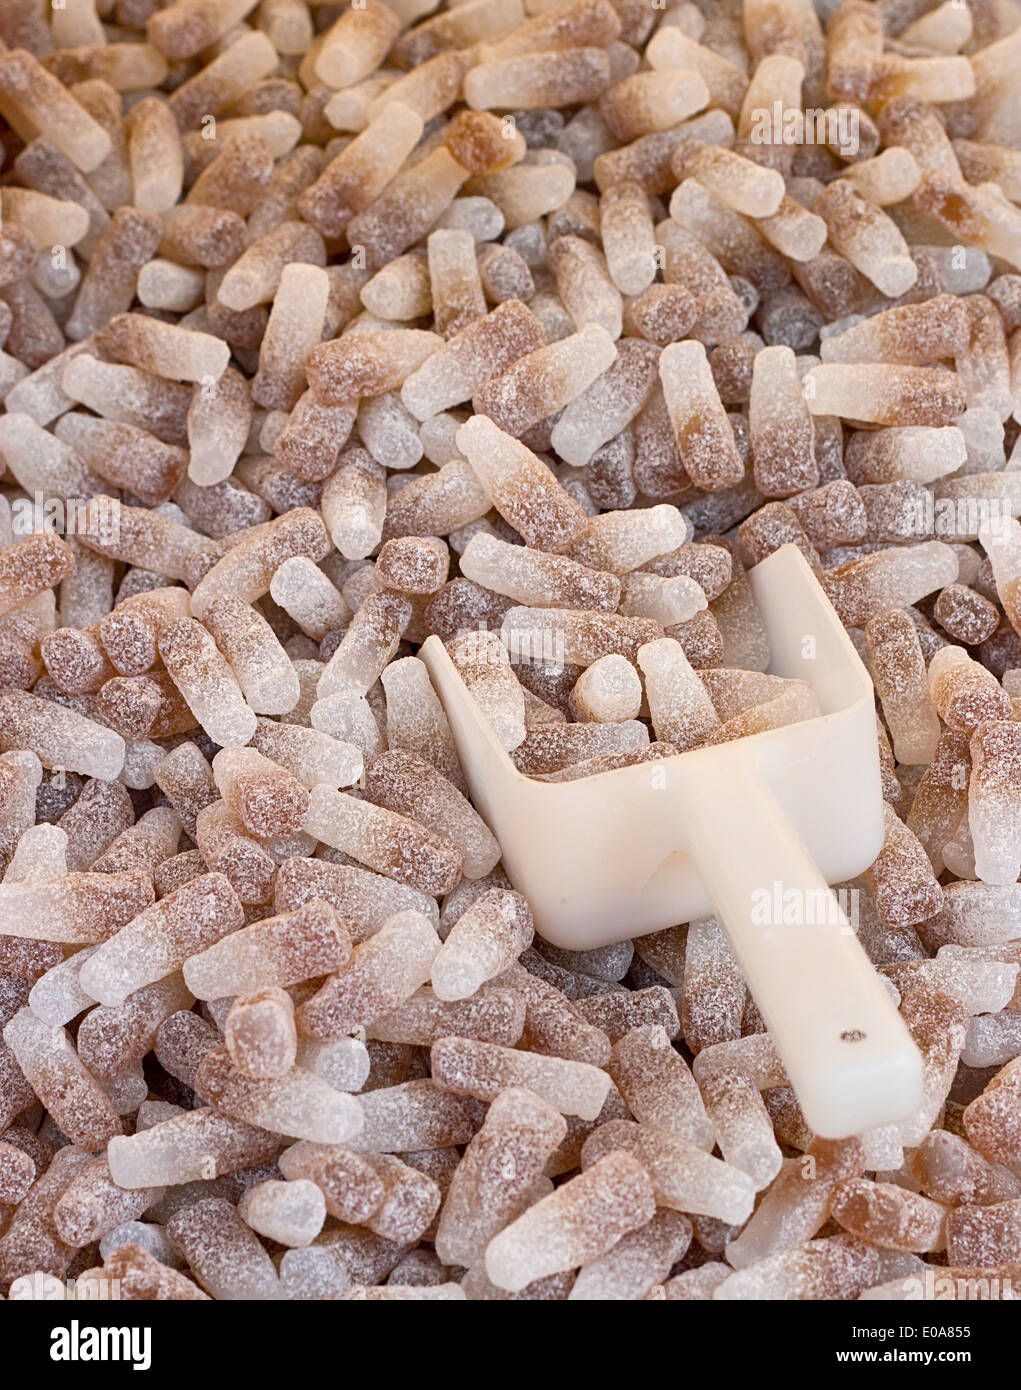 Fizzy Cola Bottles a popular retro sweet also known as Gummy candy at a pick and mix self service market. - Stock Image